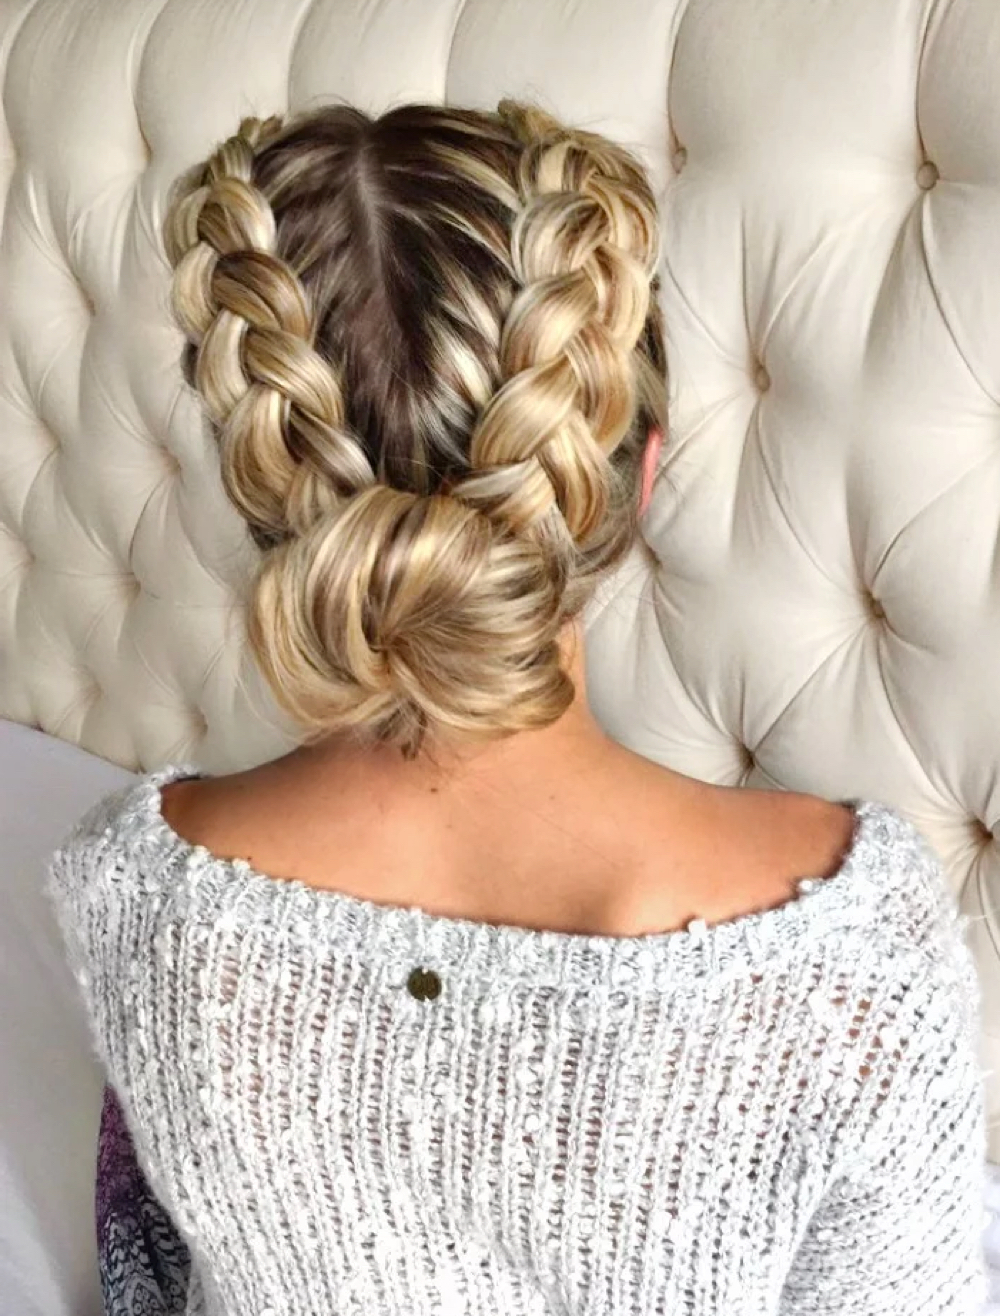 Widely Used Low Braided Bun Updo Hairstyles Regarding 29 Gorgeous Braided Updo Ideas For  (View 20 of 20)